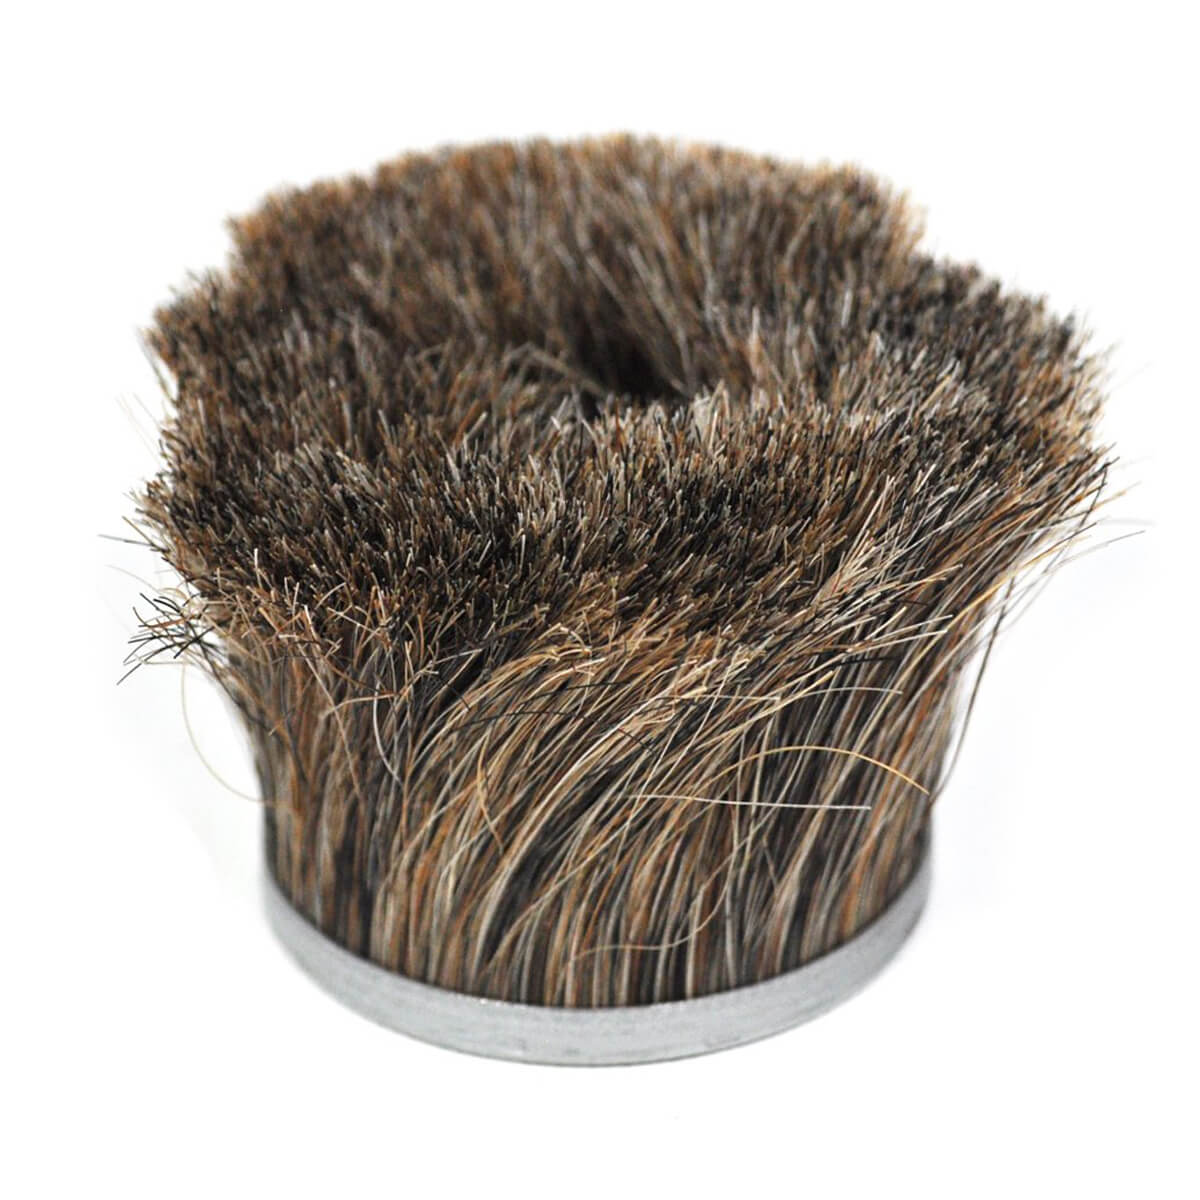 Replacement bristles for the Sirena dusting brush attachment